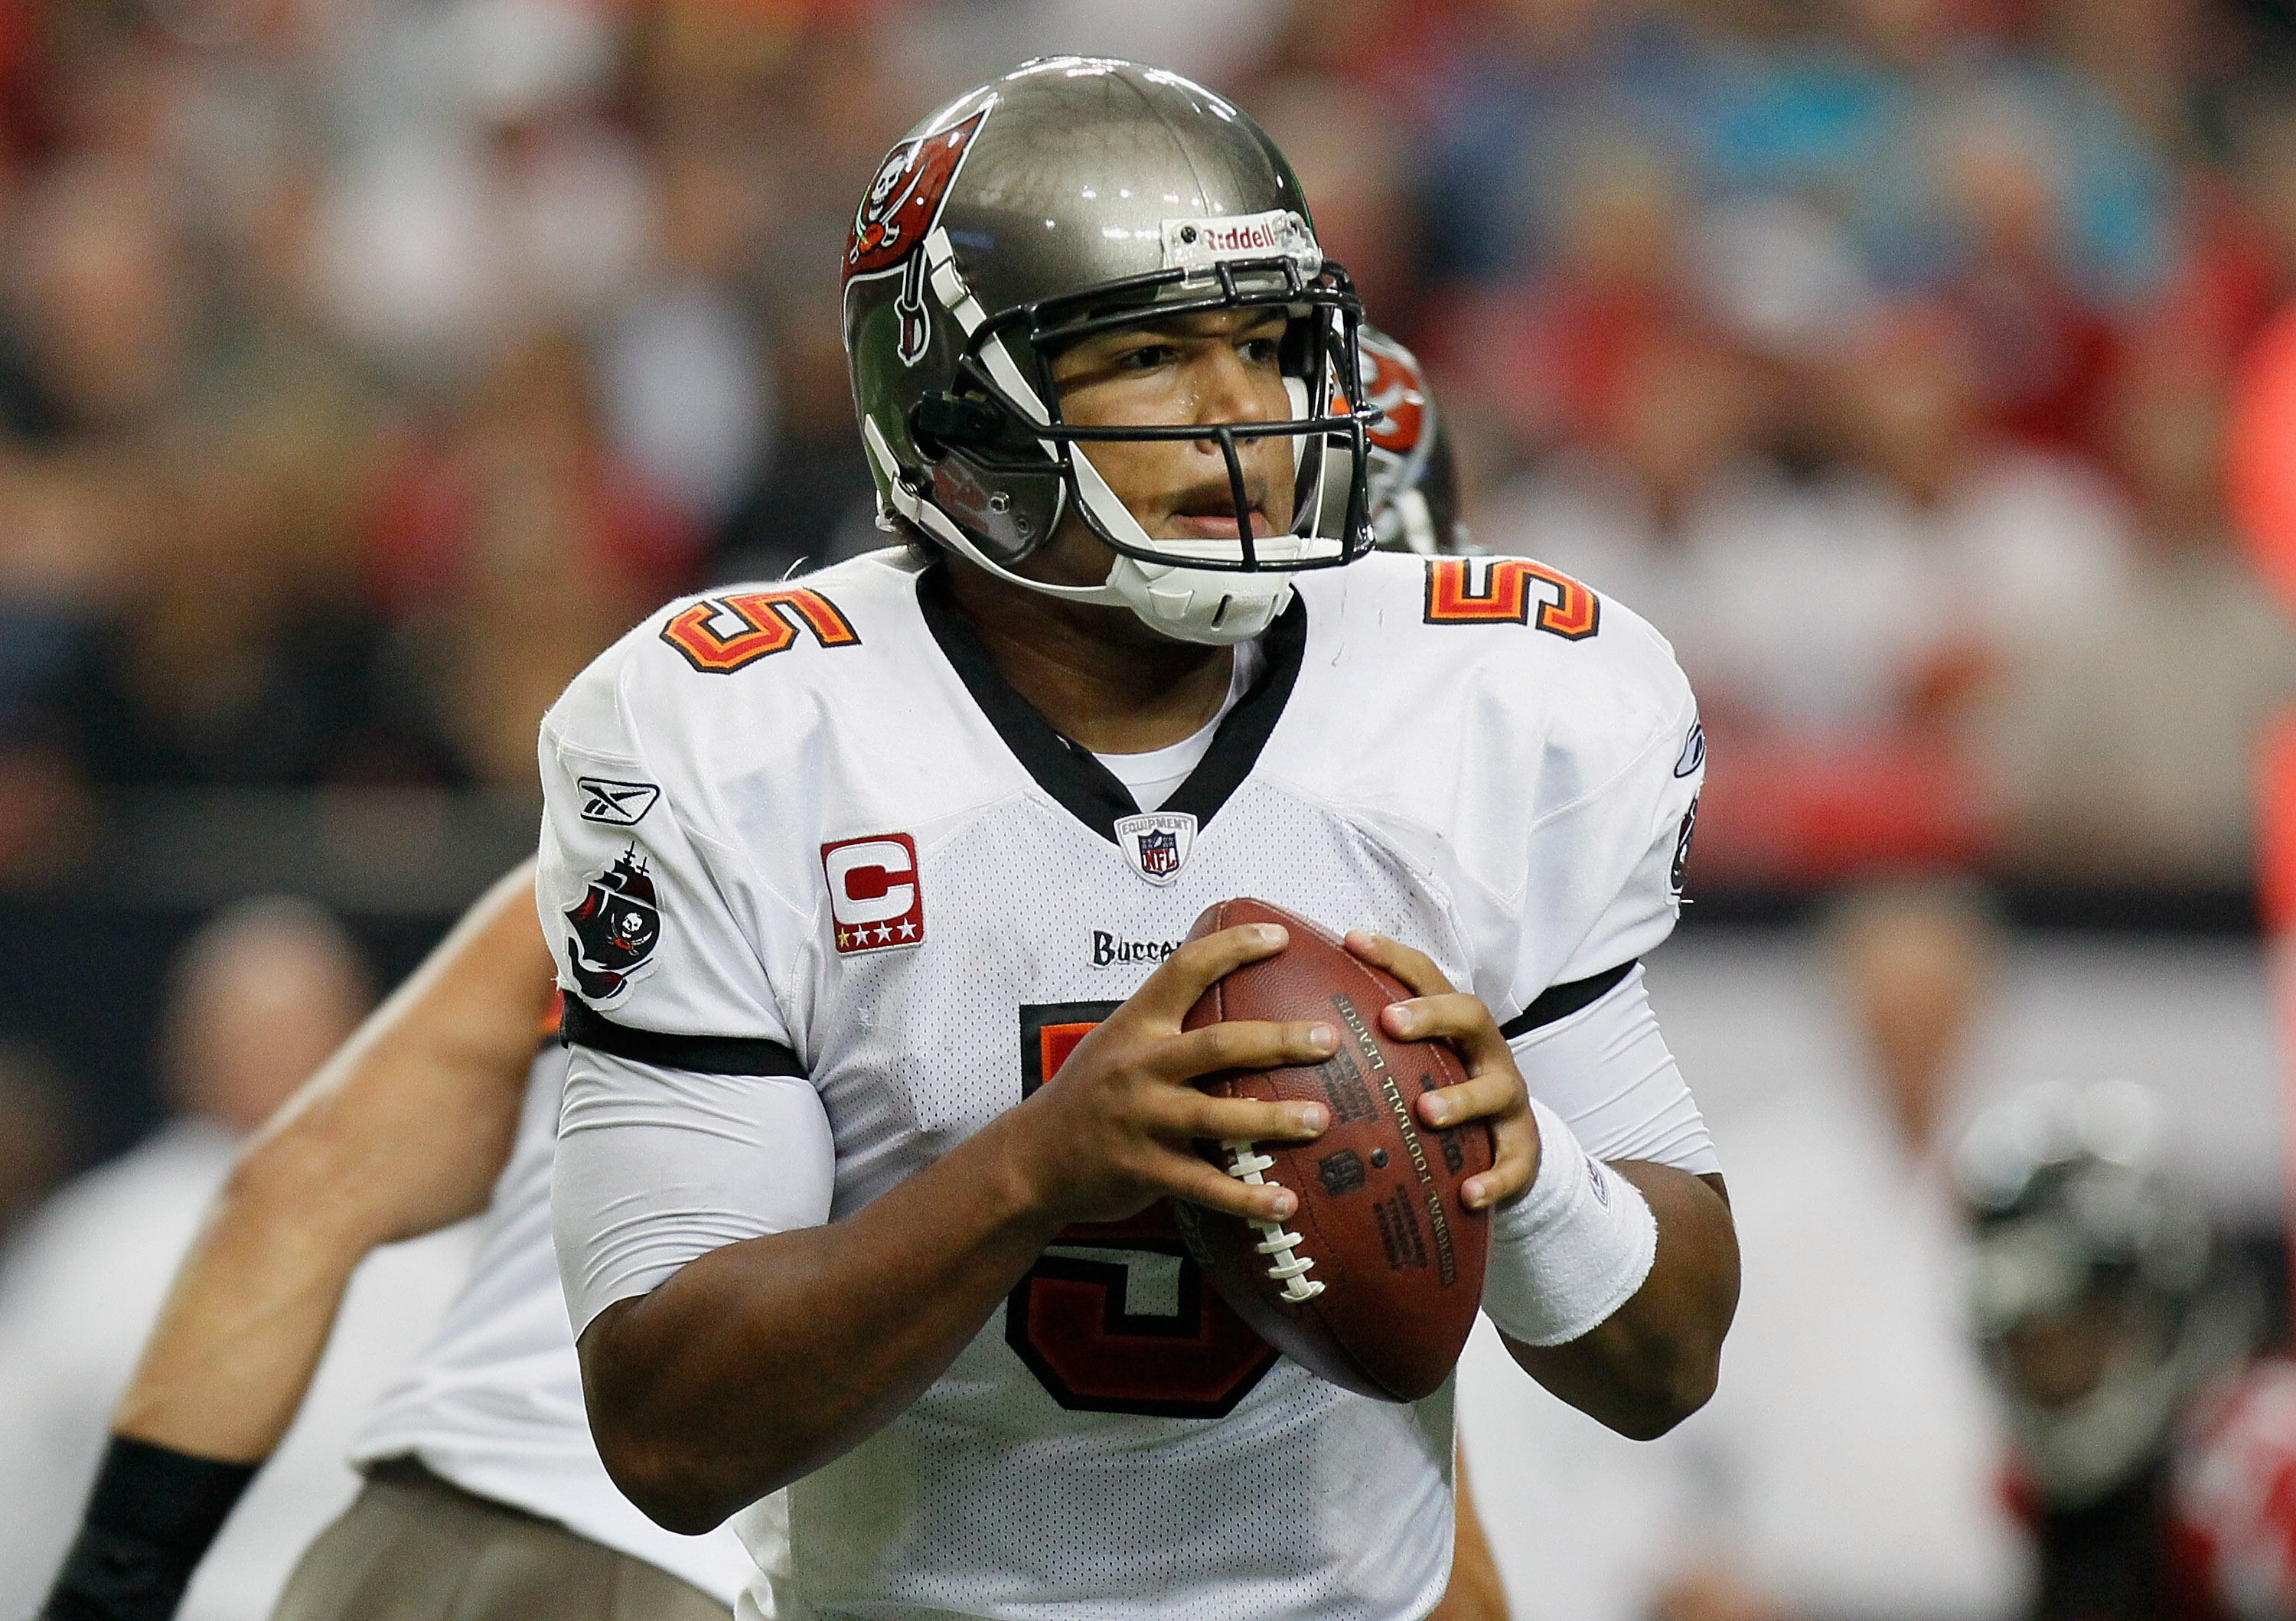 ATLANTA - NOVEMBER 07:  Quarterback Josh Freeman #5 of the Tampa Bay Buccaneers looks to pass against the Atlanta Falcons at Georgia Dome on November 7, 2010 in Atlanta, Georgia.  (Photo by Kevin C. Cox/Getty Images)